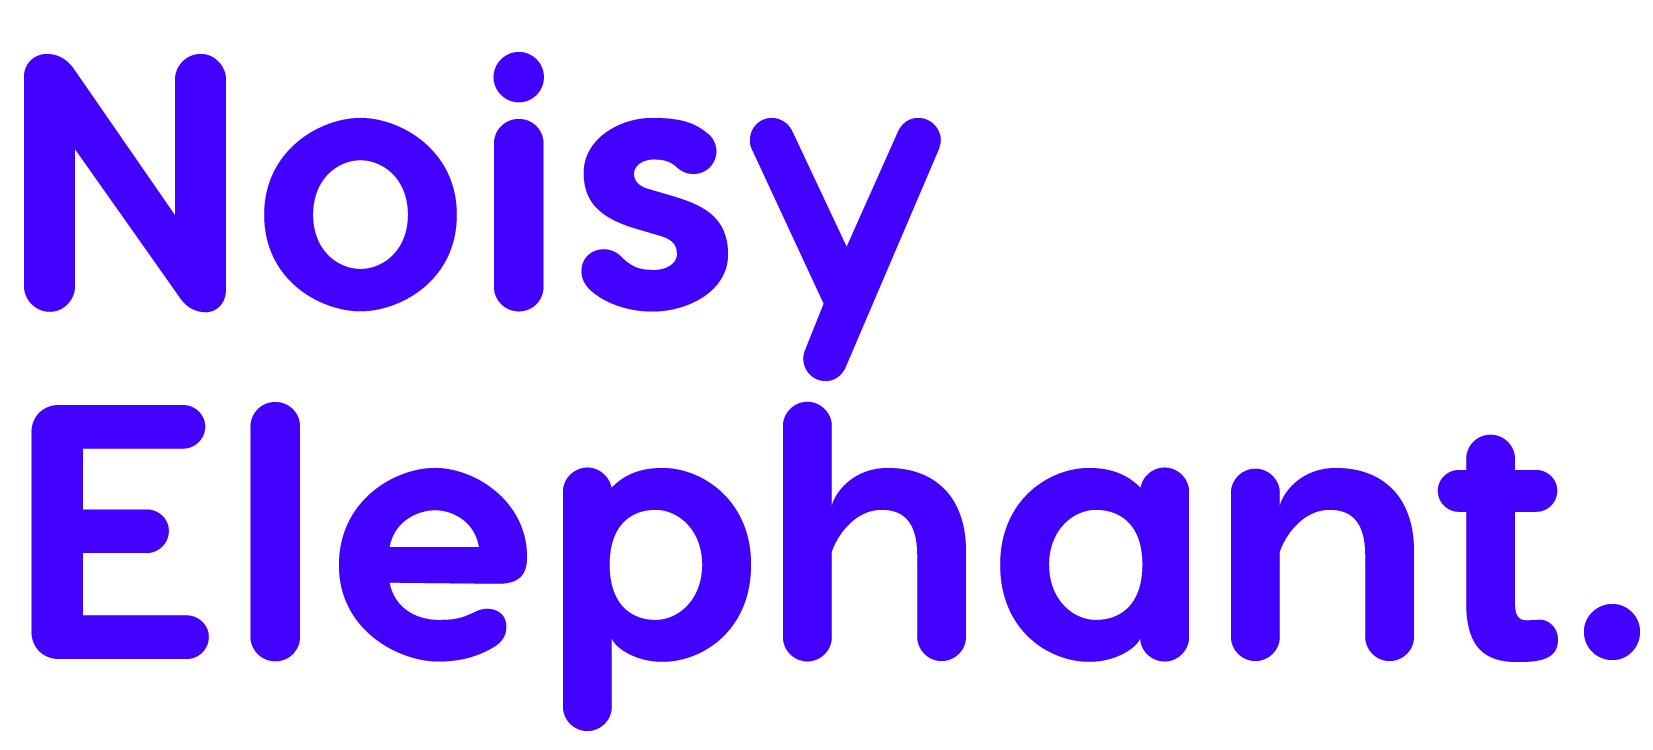 NOISY ELEPHANT.